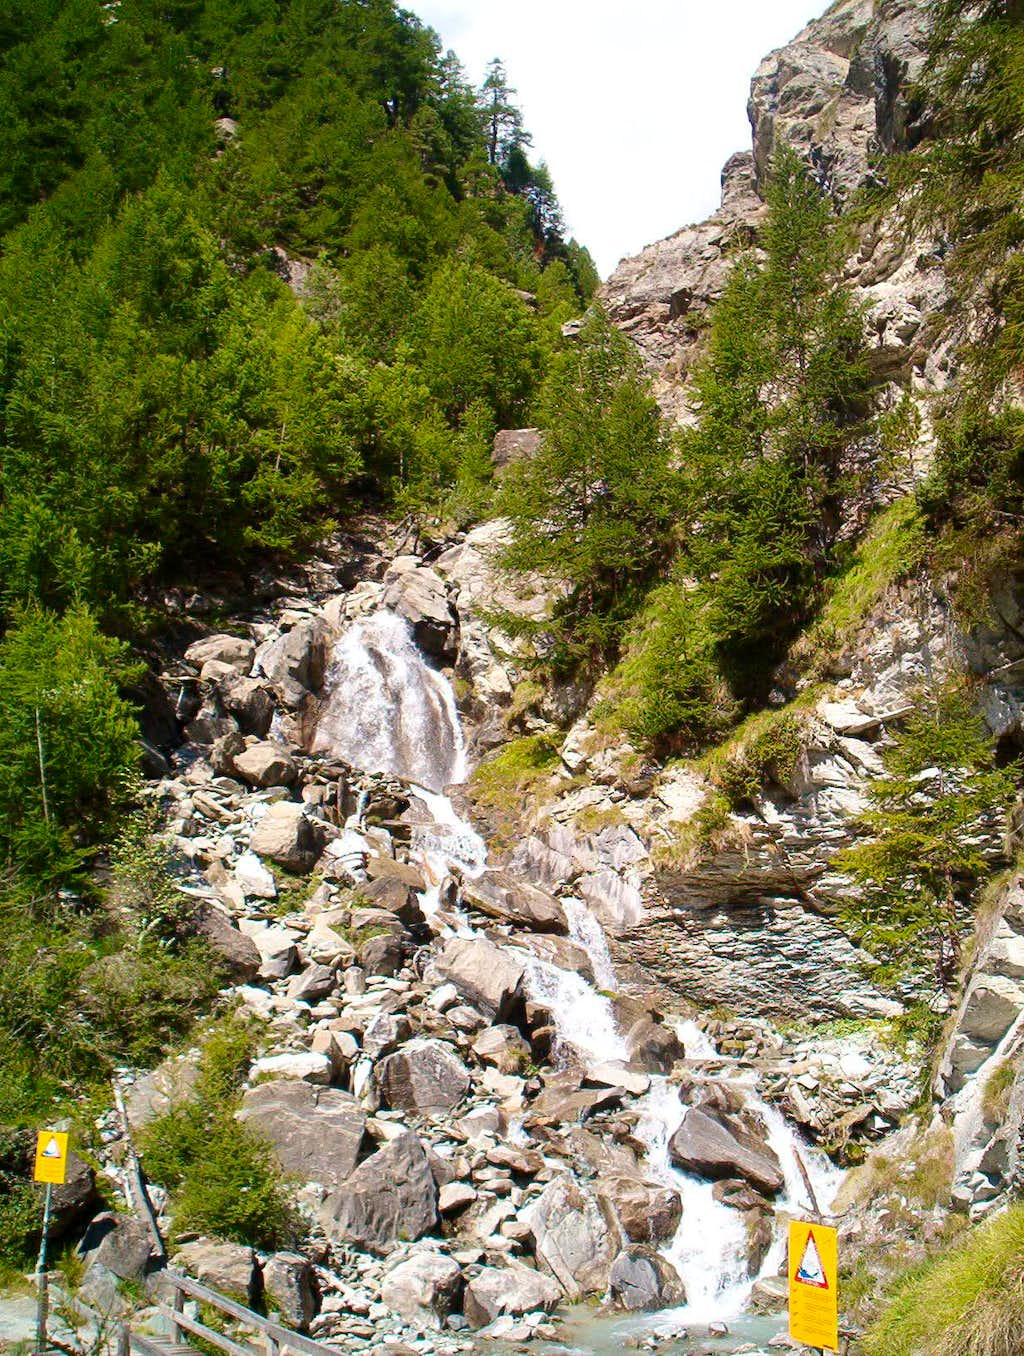 The river Trift